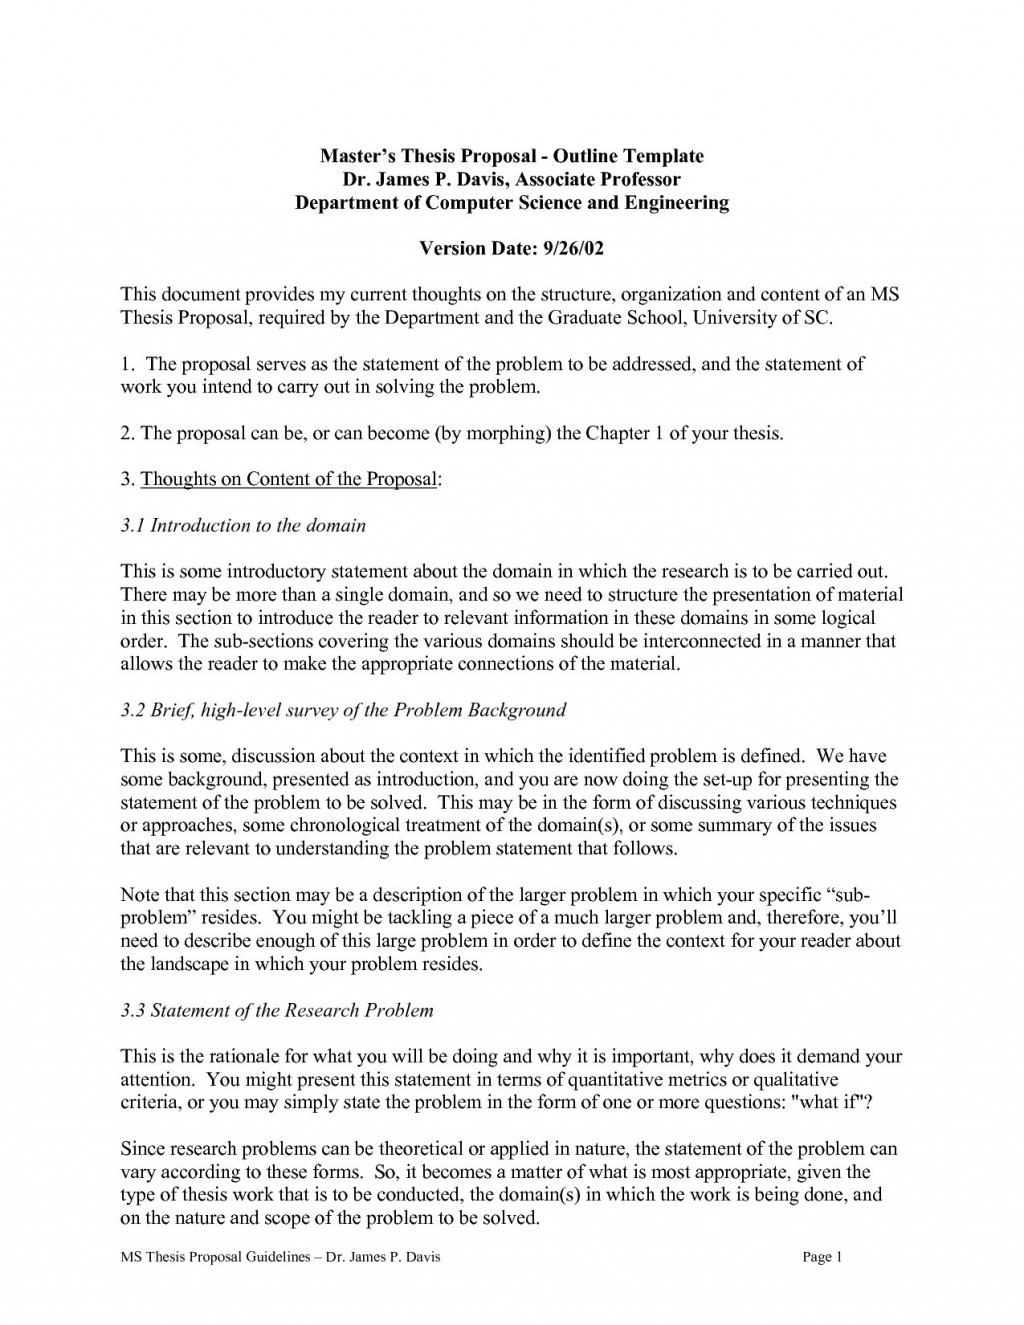 003 Beauty Definition Essay Rare Conclusion Extended Large